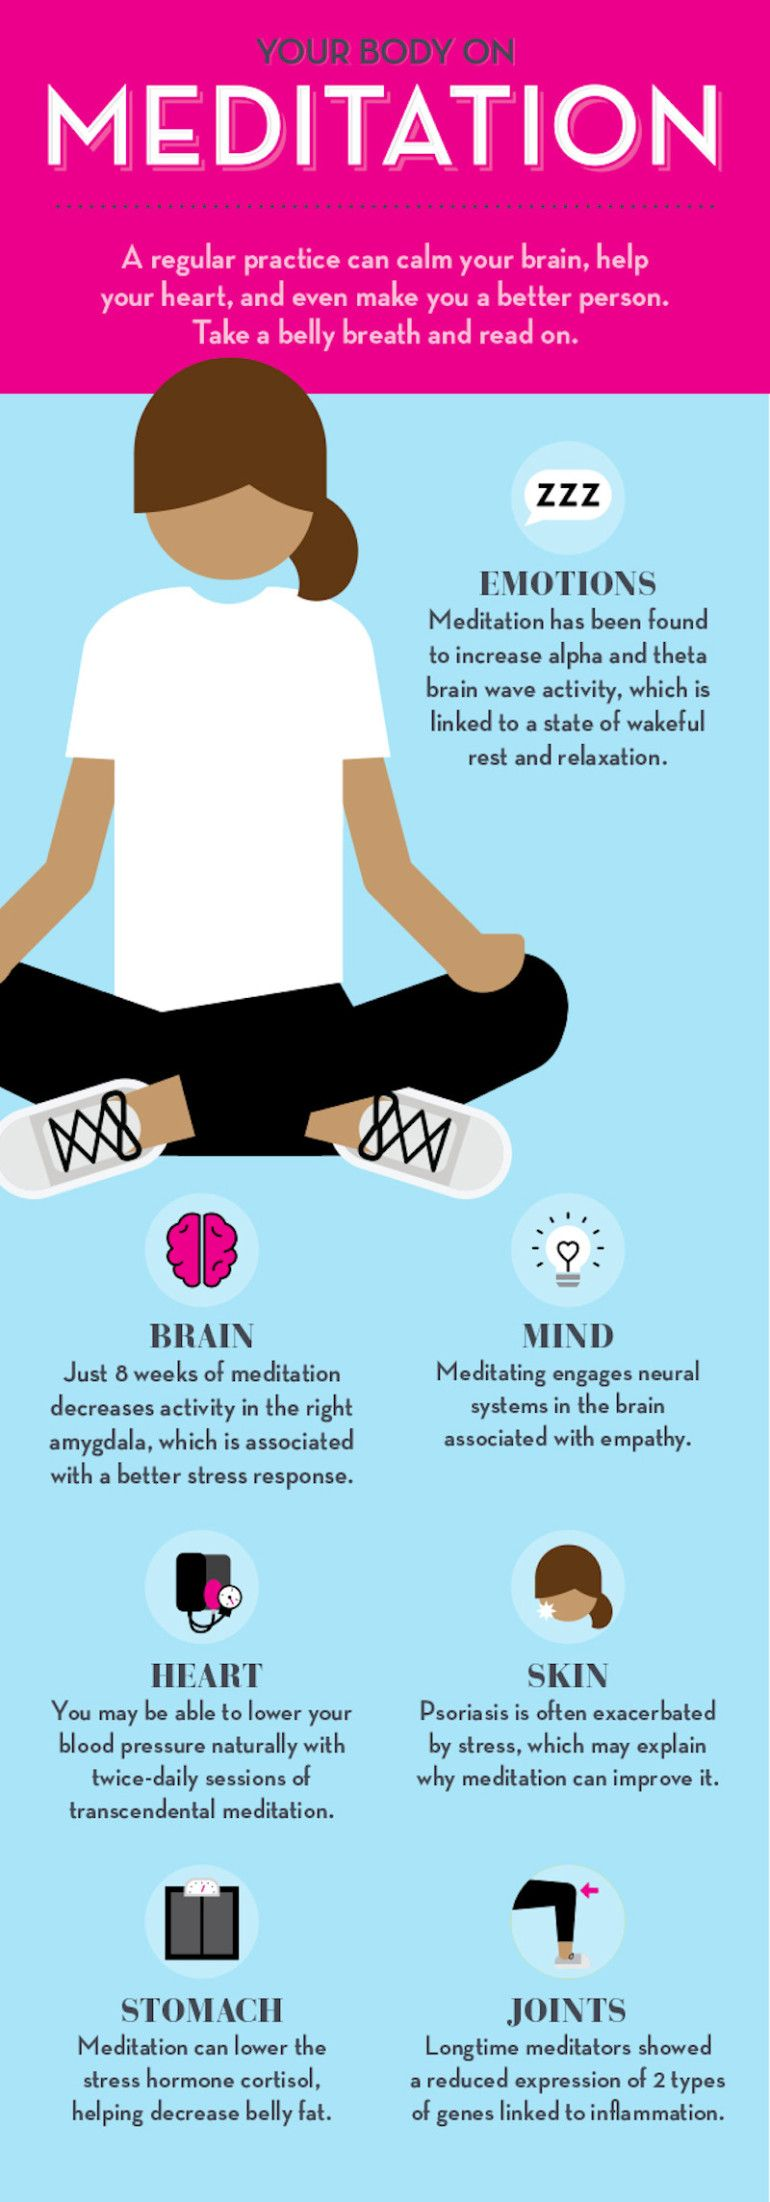 We at MindBodyGreen are all in on the benefits of meditation, which are too numerous to list in a short post. What's more, these benefits.